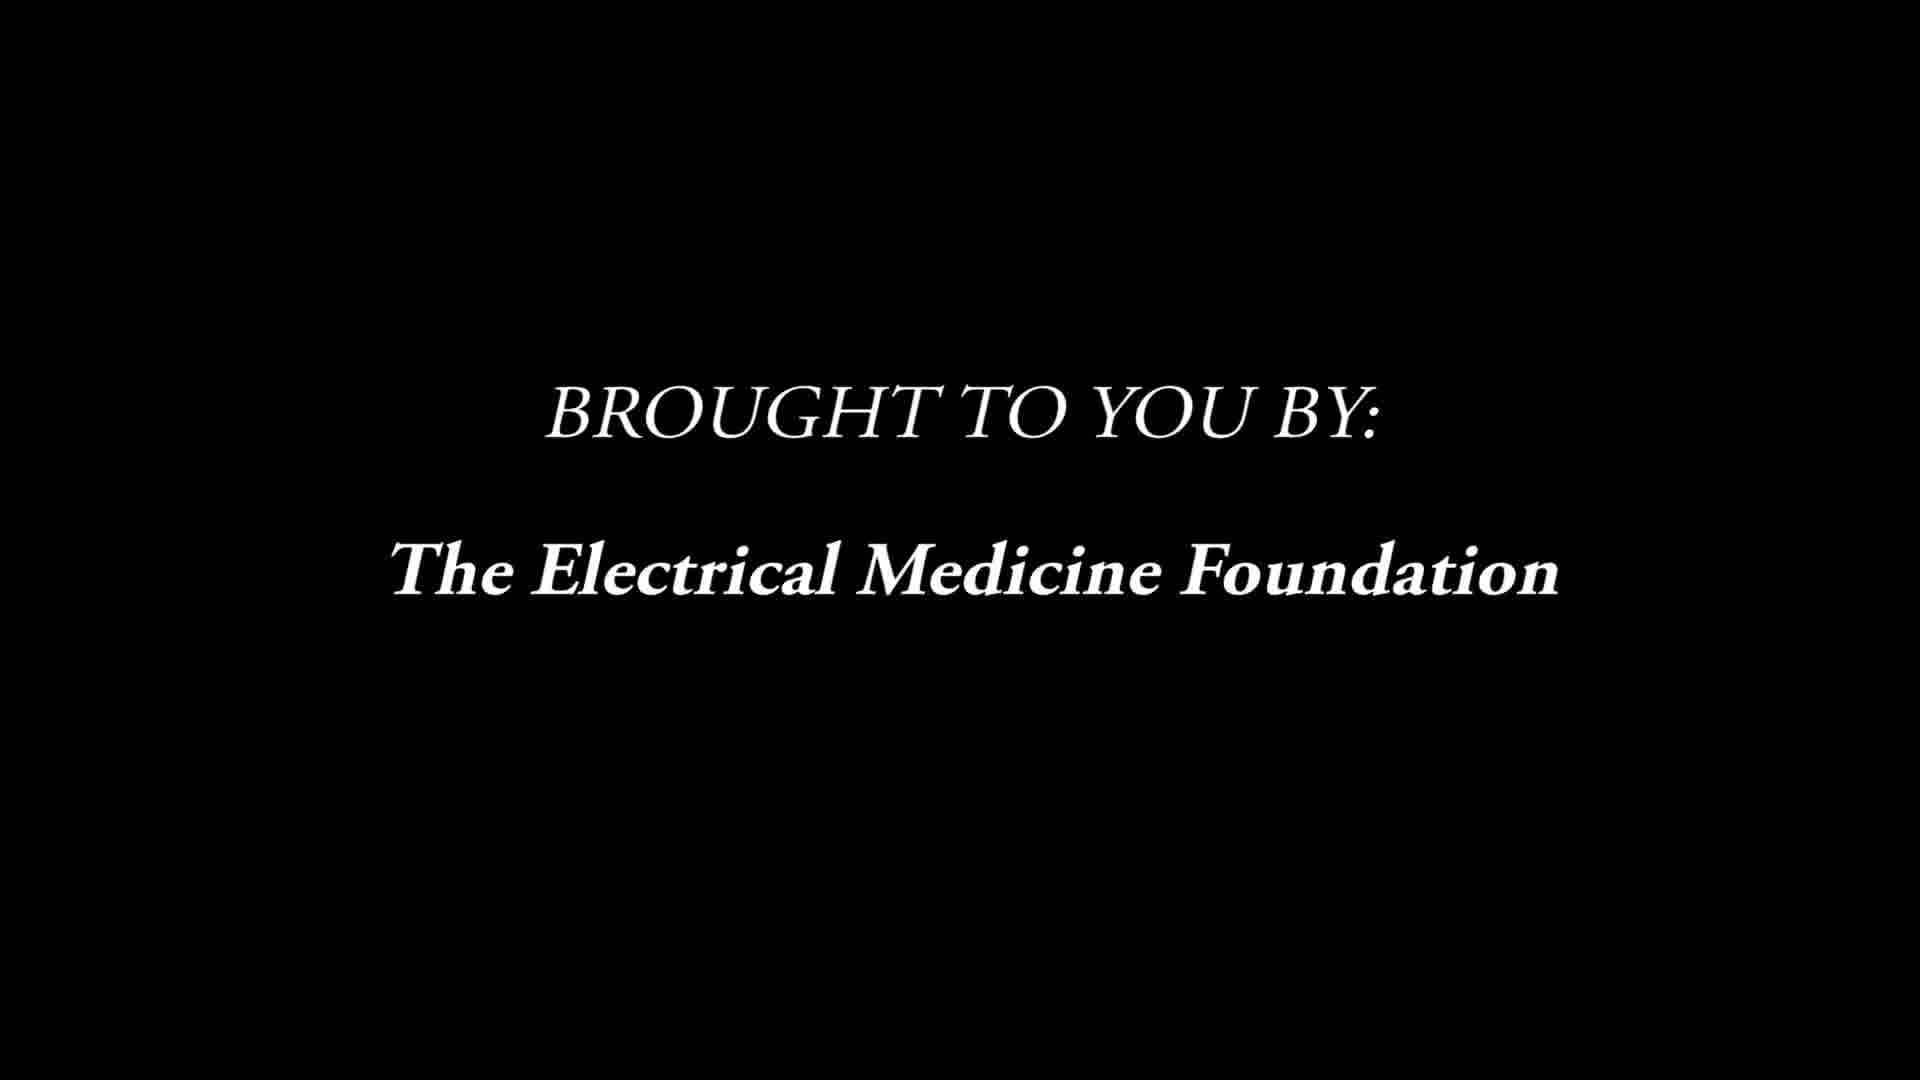 pituitary Functions increased by electrical medicine